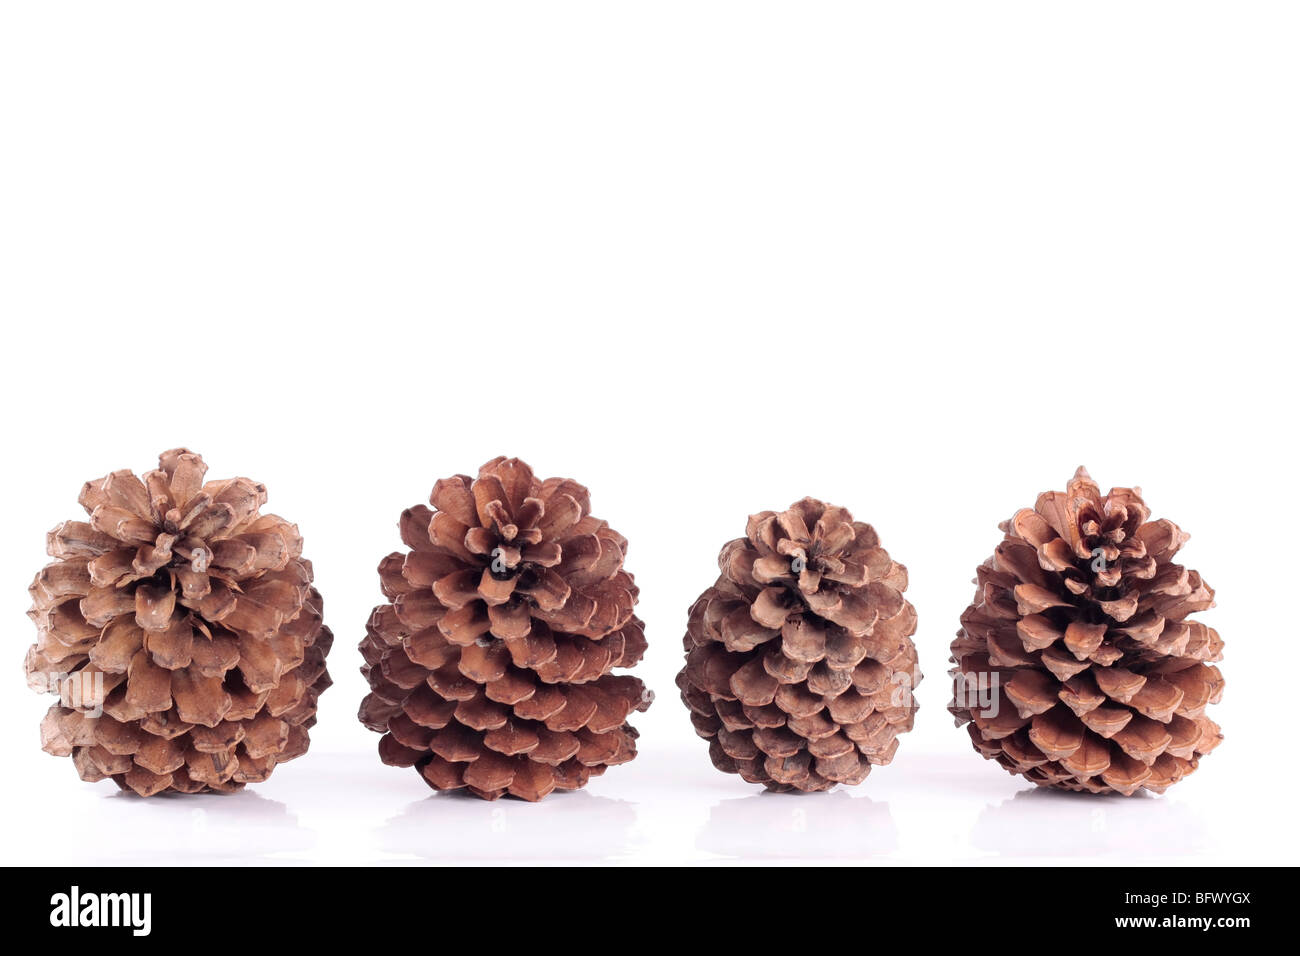 Pinecones background isolated over white - Stock Image